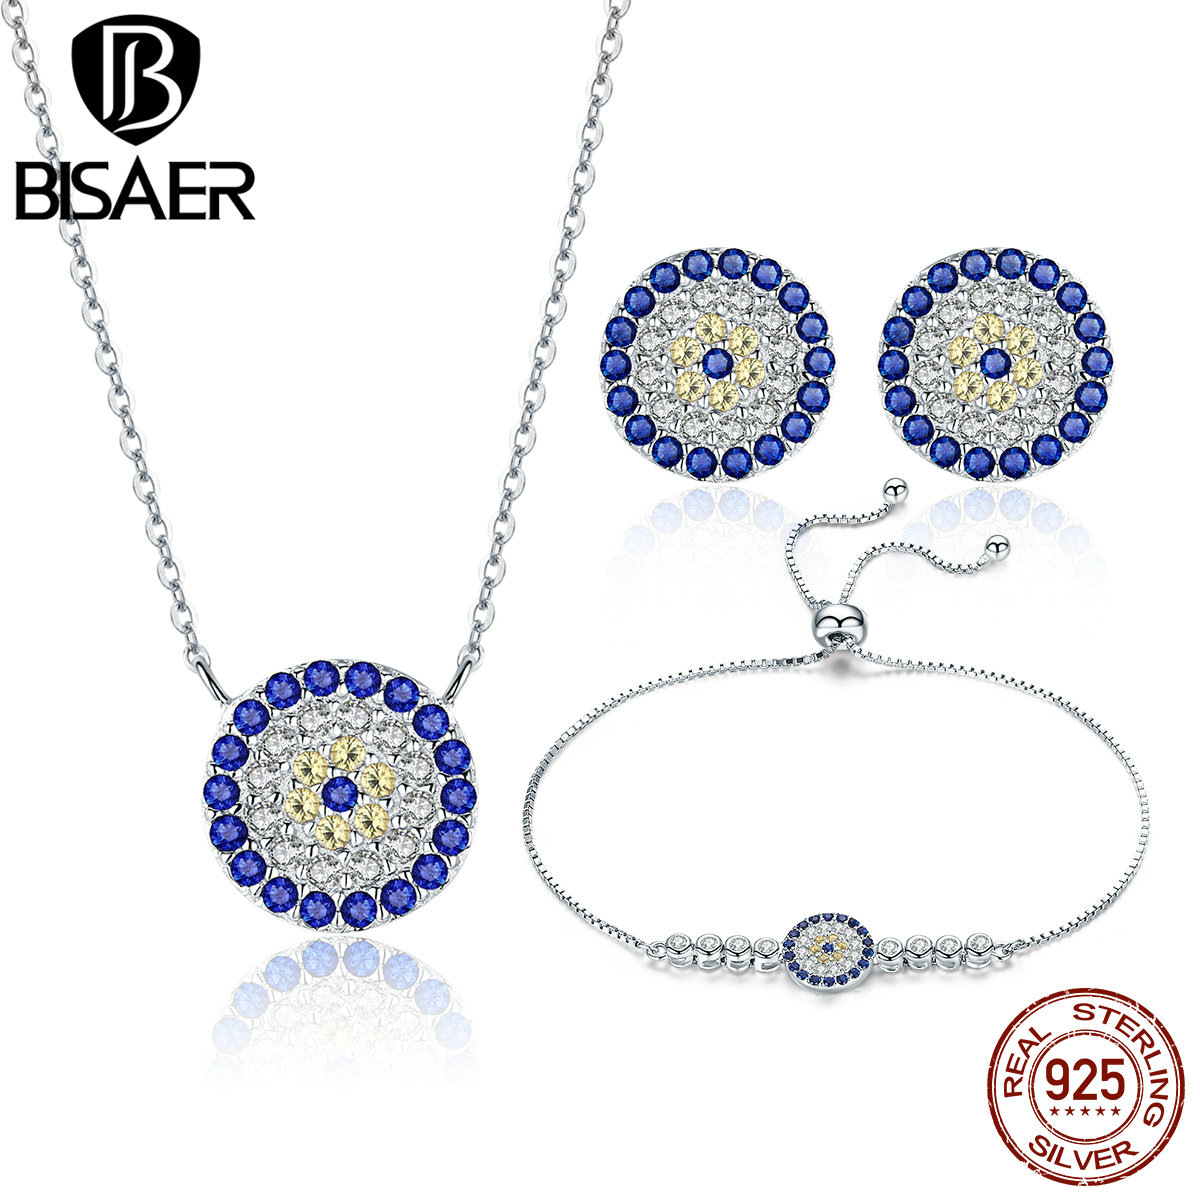 BISAER Vintage 925 Sterling Silver Round Circle Blue Clearly CZ Necklace Earrings Bracelet Jewelry Set Anniversary недорго, оригинальная цена